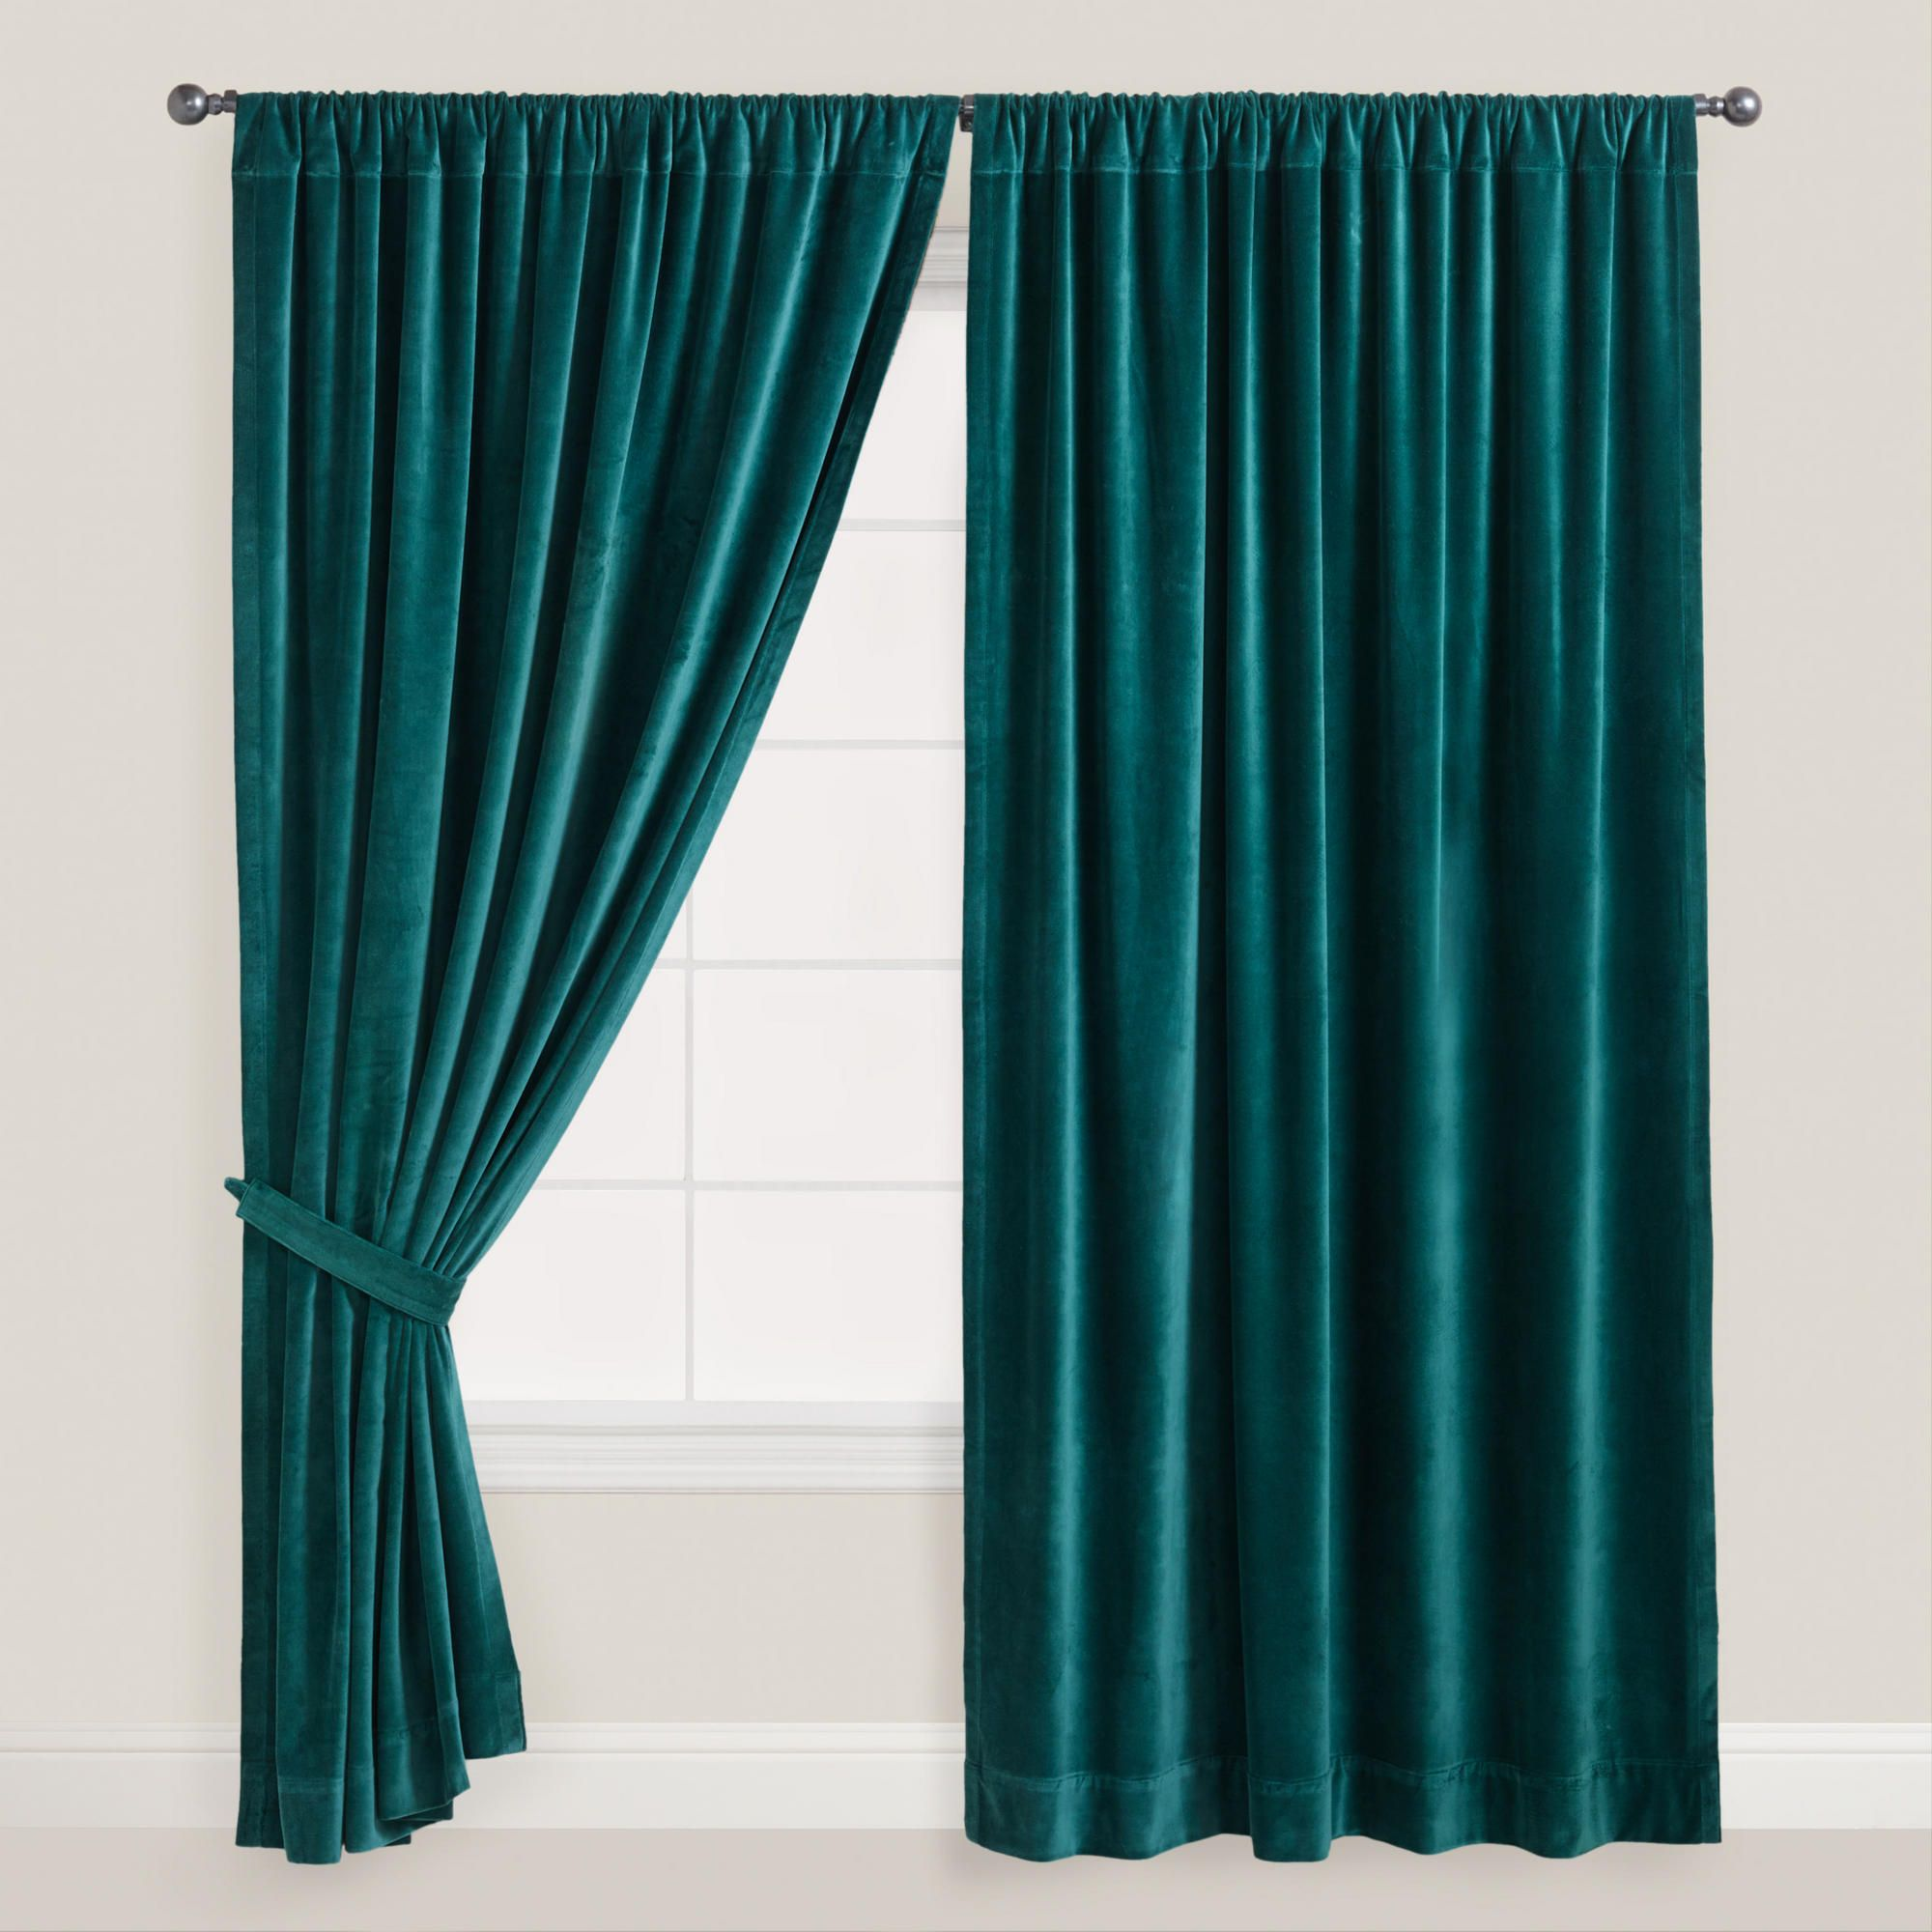 koikaa velvet grey curtains curtain made dark and custom silver products drapes